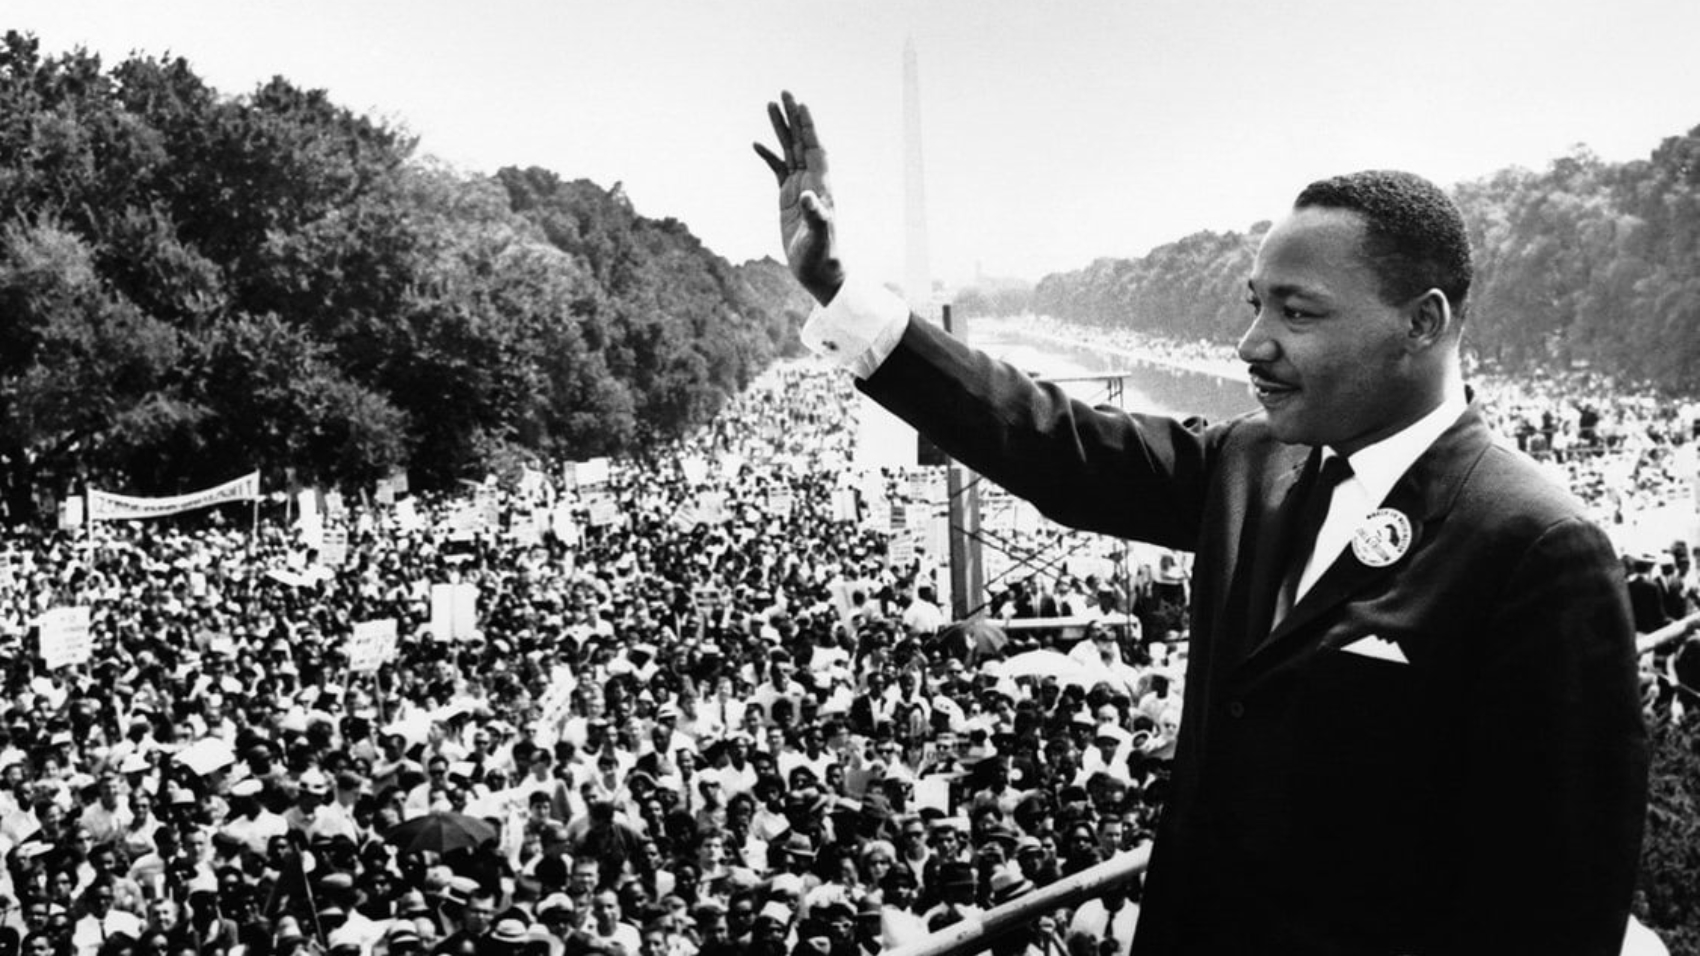 7 Life Lessons Acts of Service Inspire - Martin Luther King Jr. Day